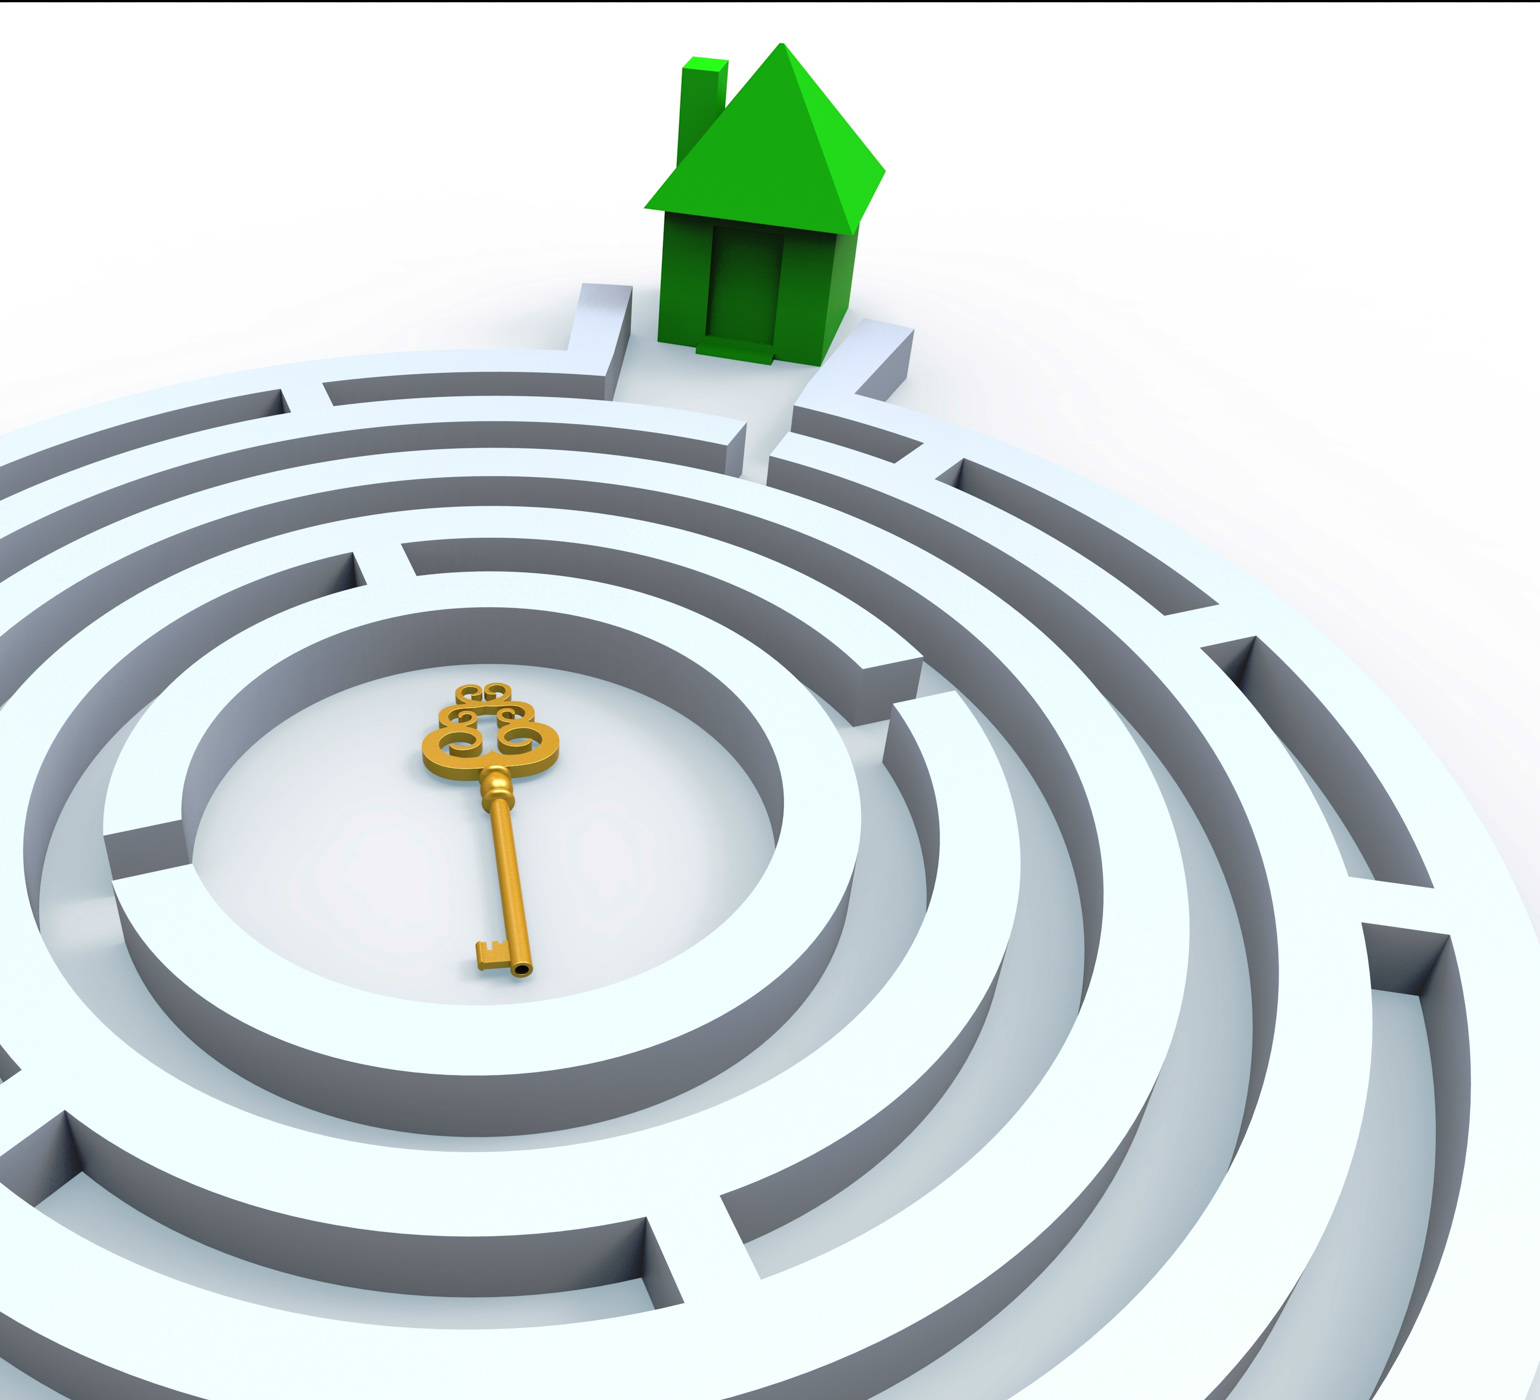 Key to home in maze shows property search photo